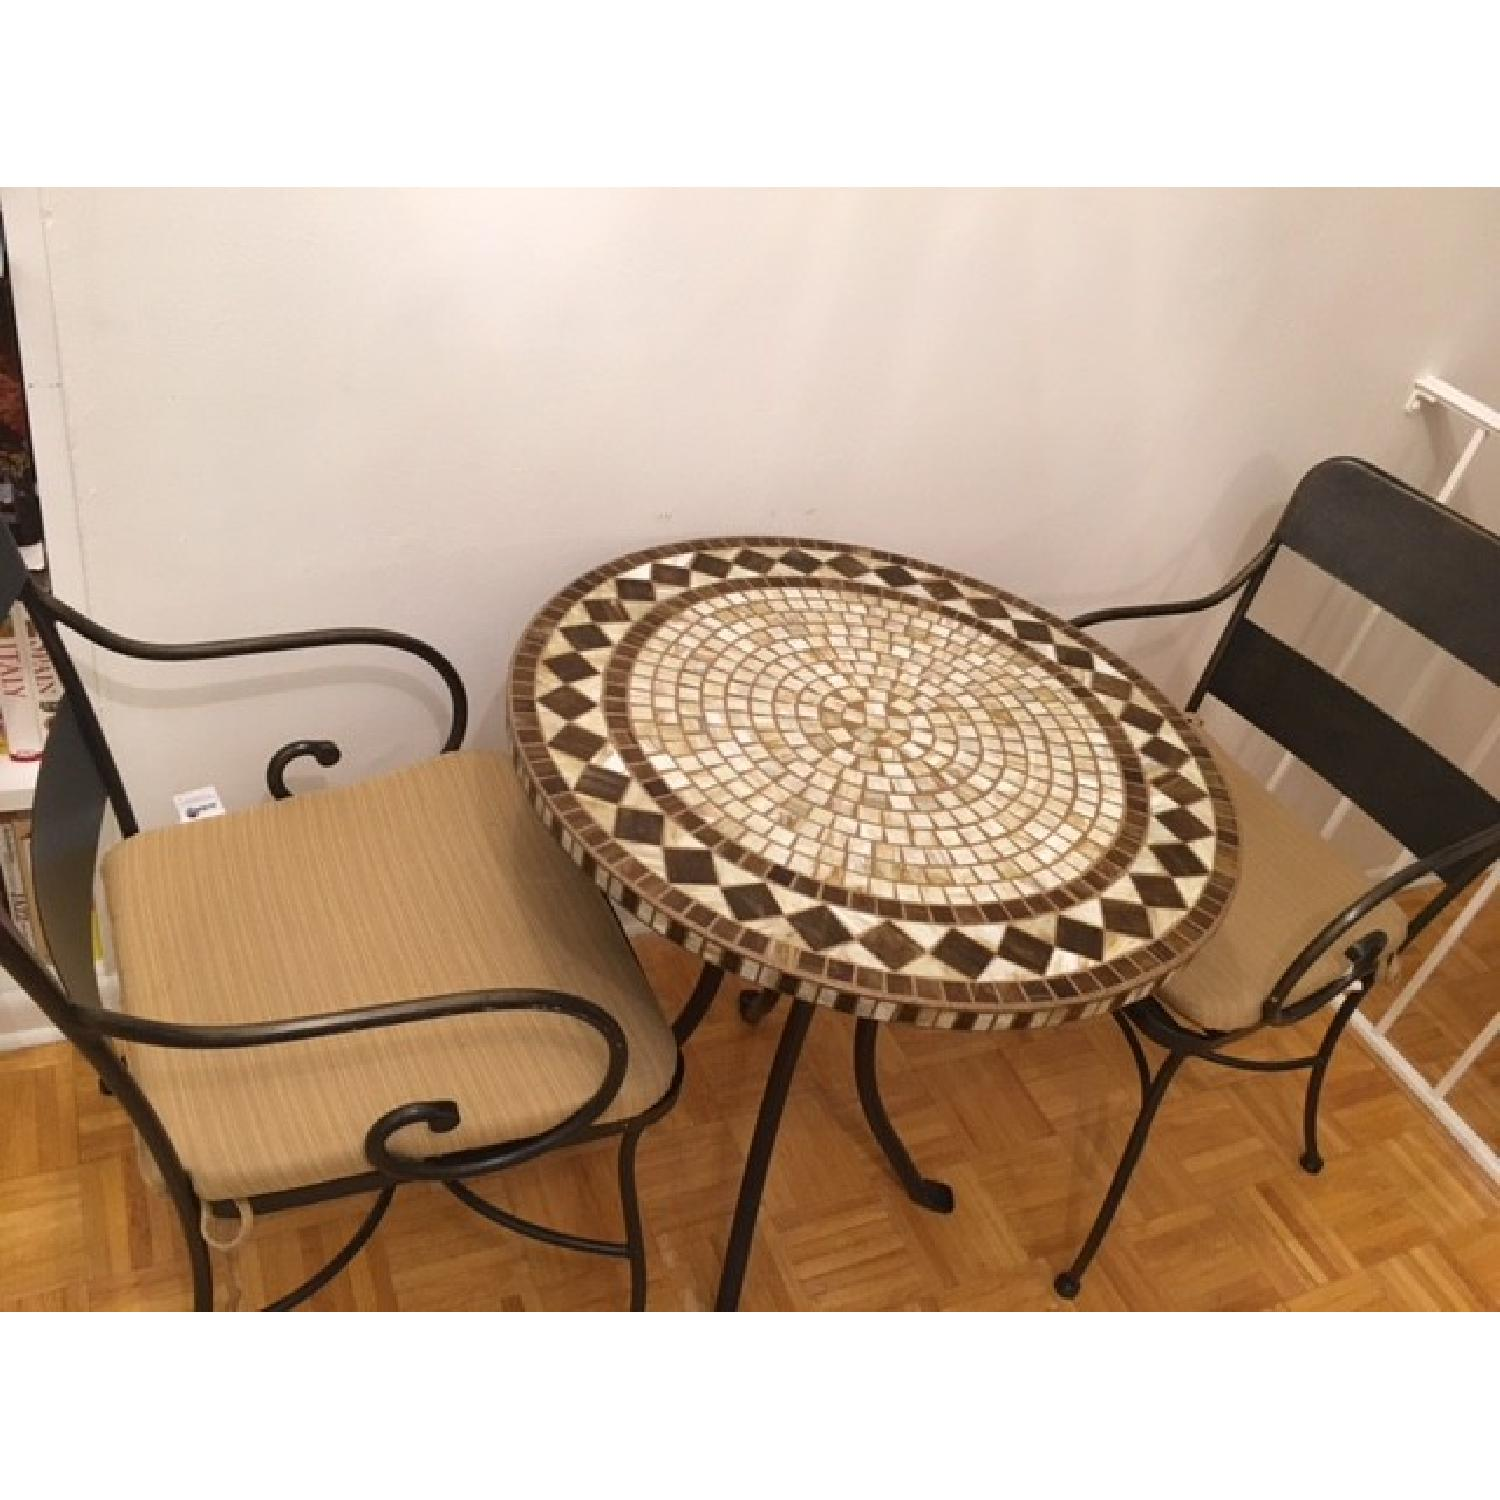 Mosaic Patio Table w/ 2 Chairs - image-1